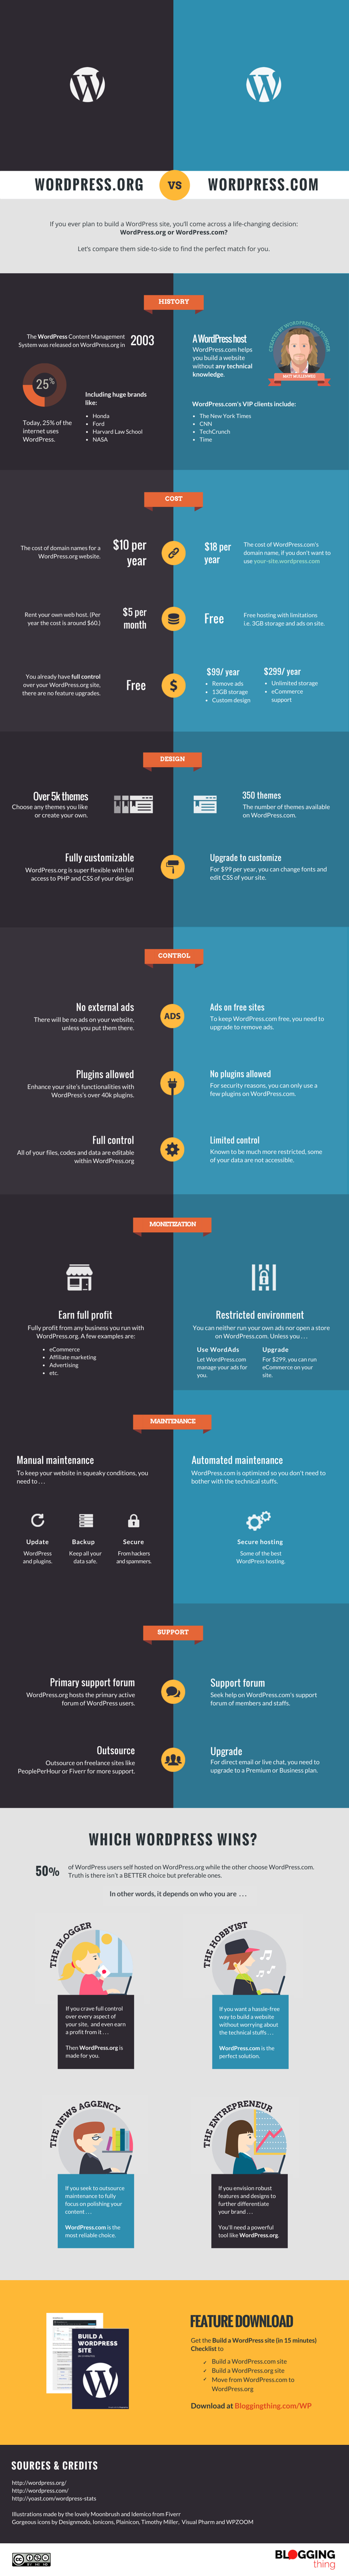 WordPress dot org vs WordPress dot com - Infographic